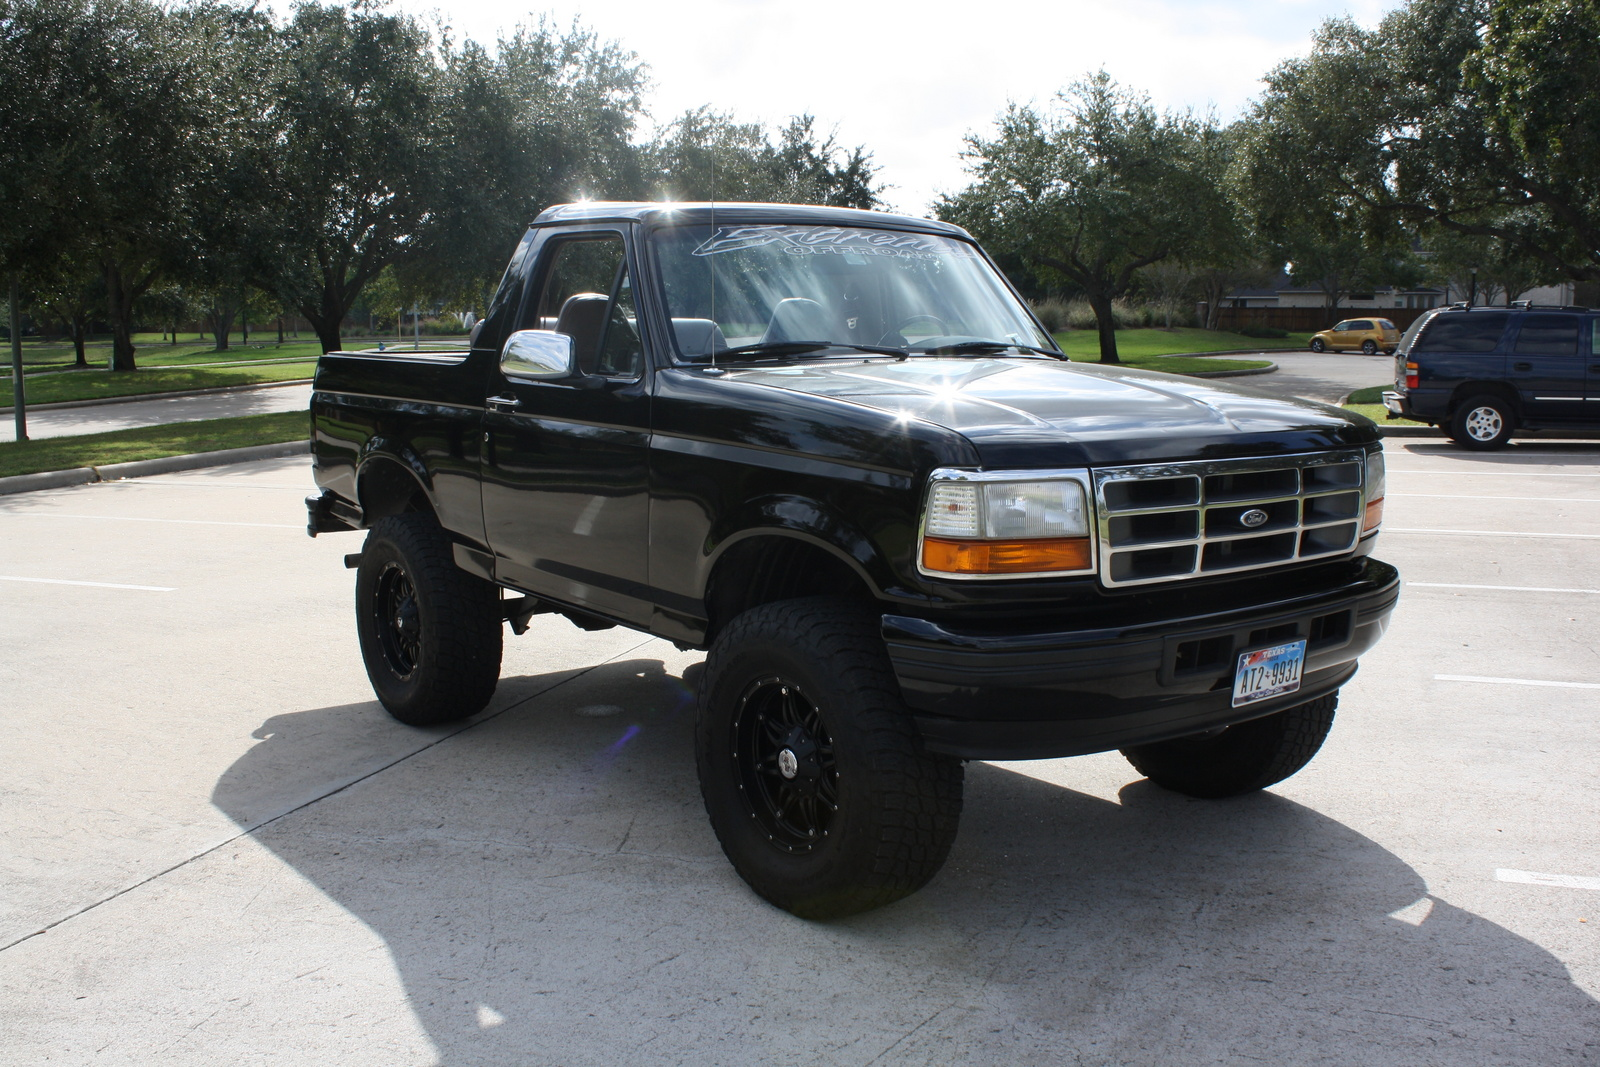 1996 Ford Bronco - Pictures